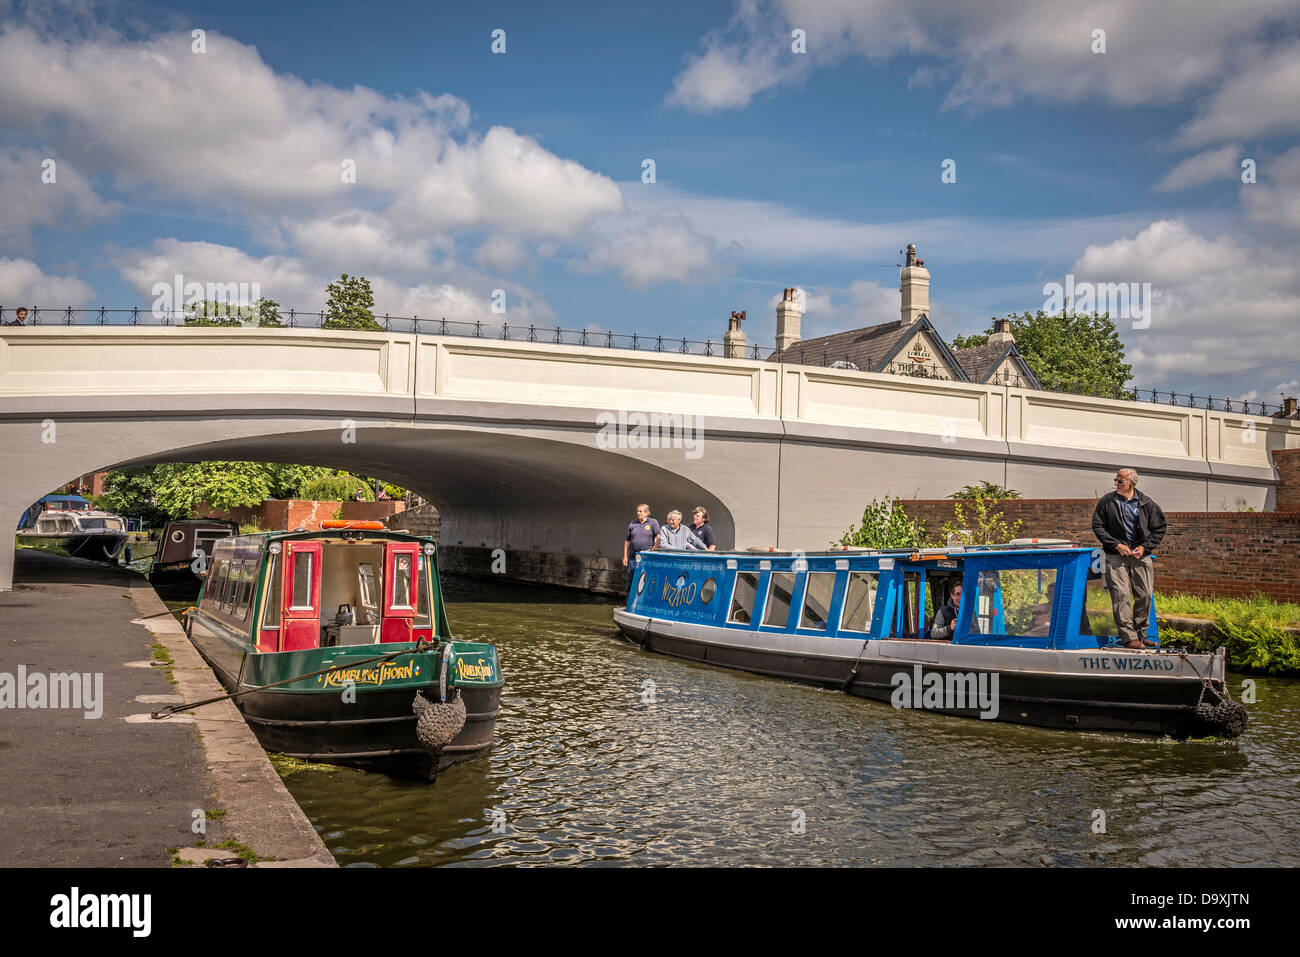 London Bridge carrying the A49 road over the Bridgewater canal and its narrowboats at Stockton Heath. - Stock Image